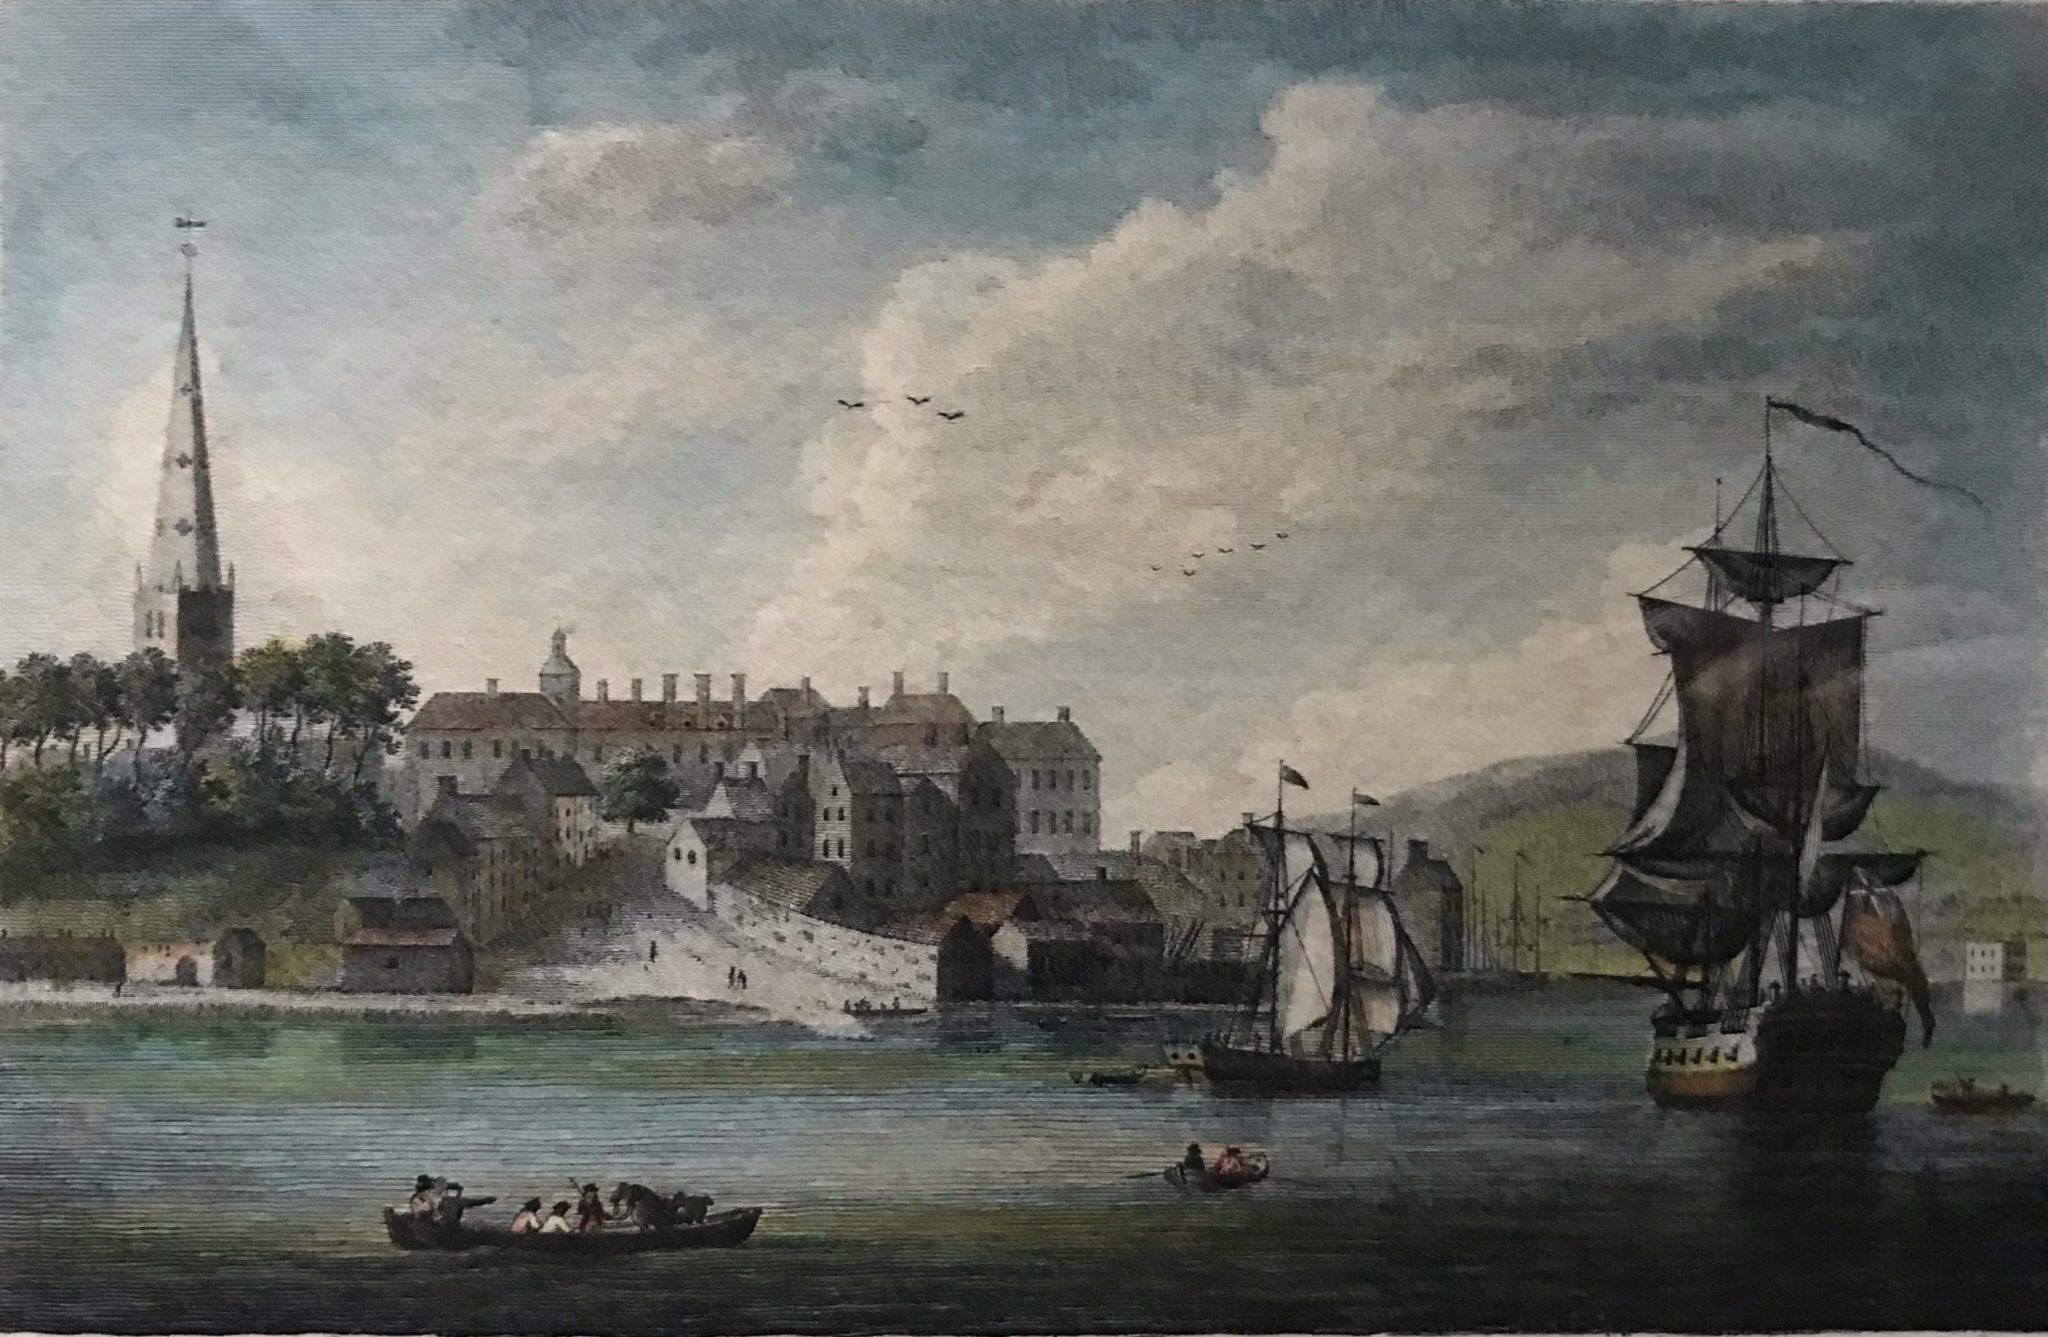 City of Derry: From Siege to Survey